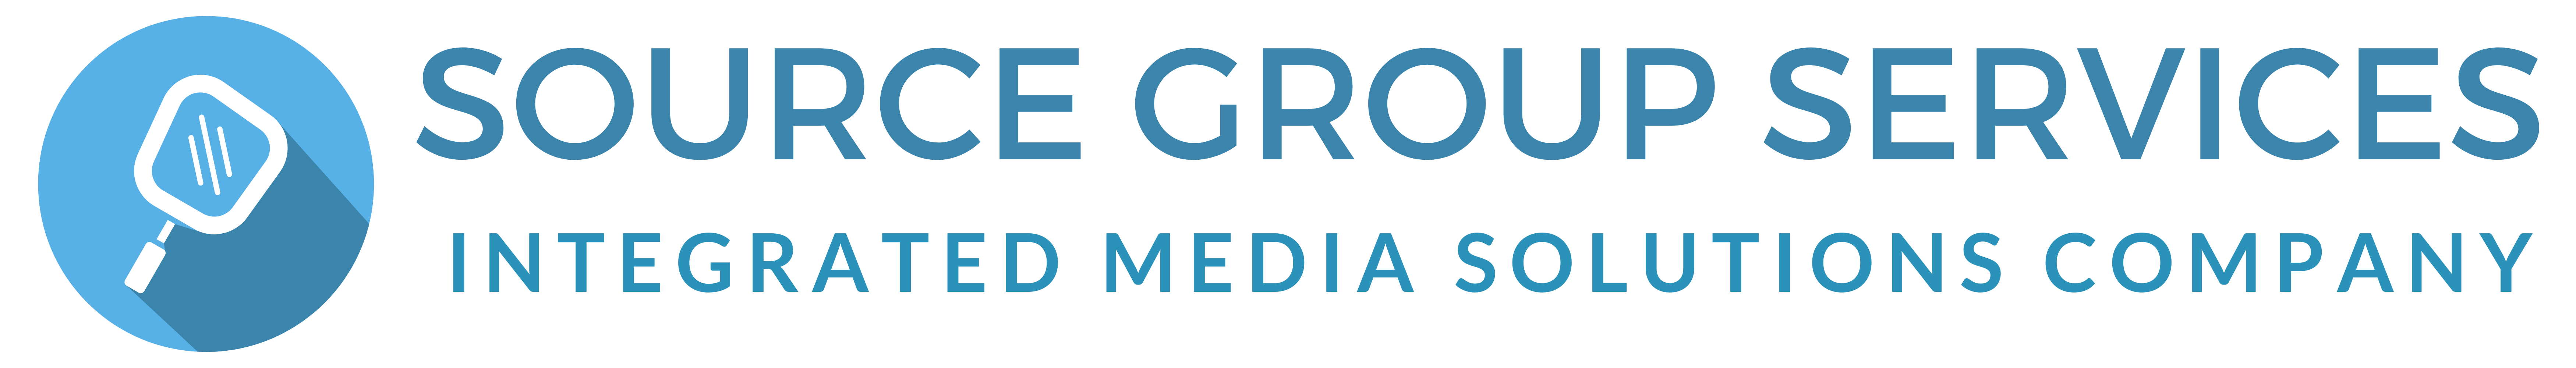 Source Group Services